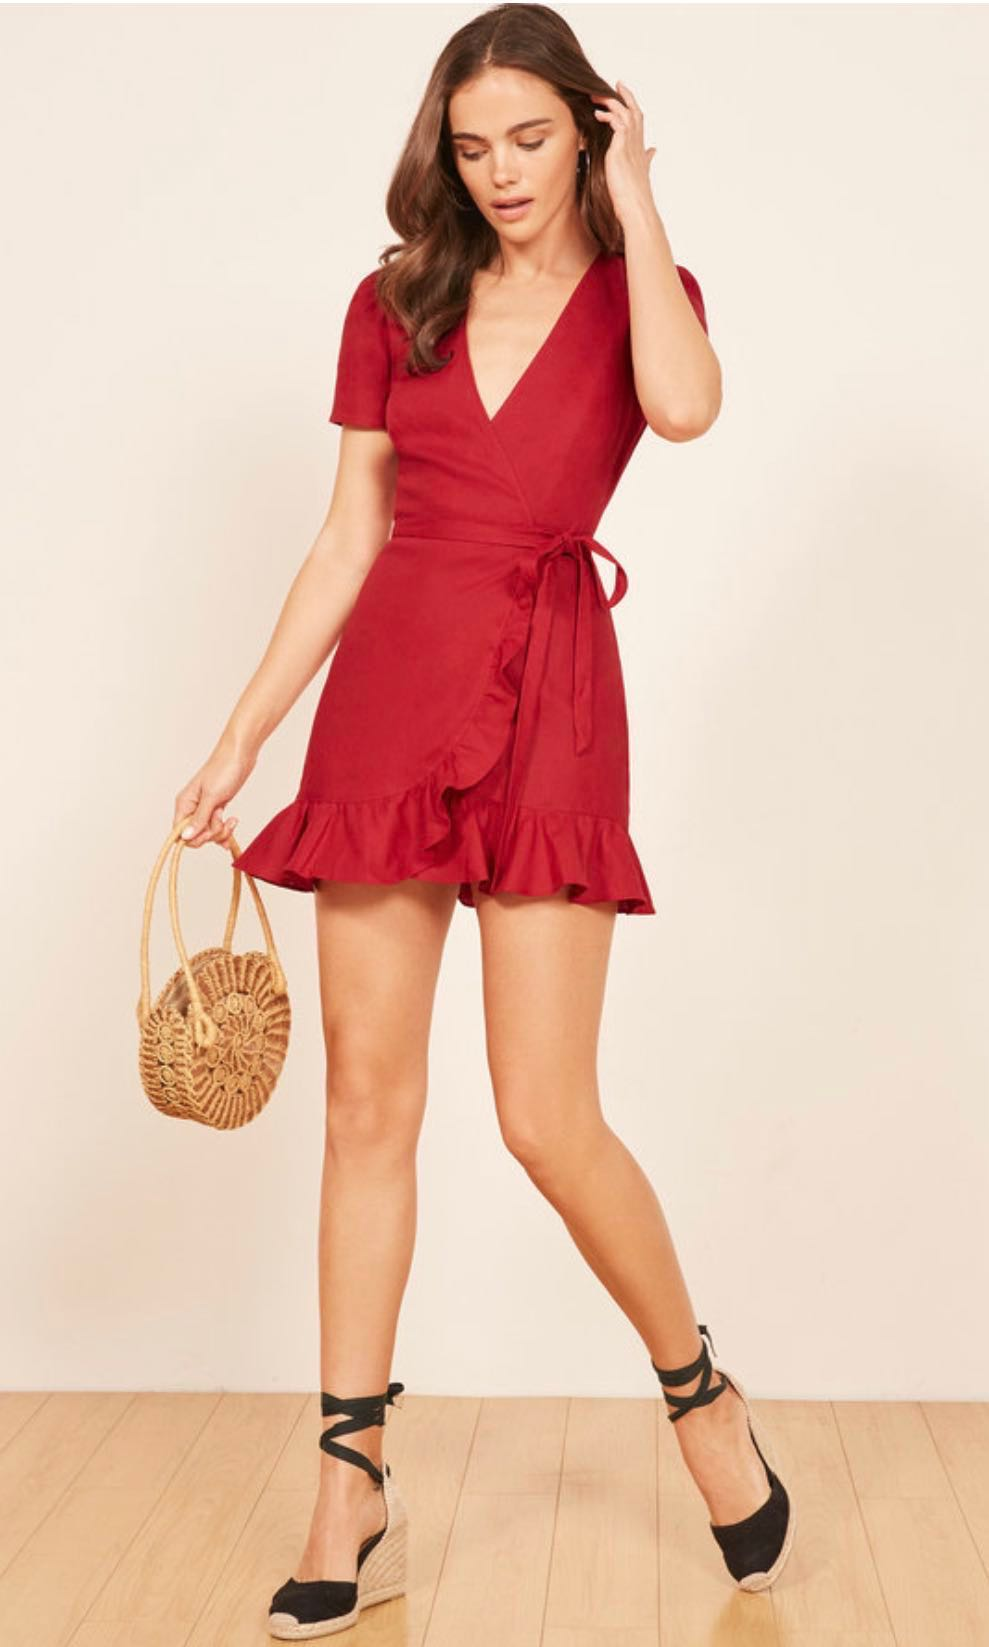 39dccca1185 Authentic Reformation Sally Dress in Cherry